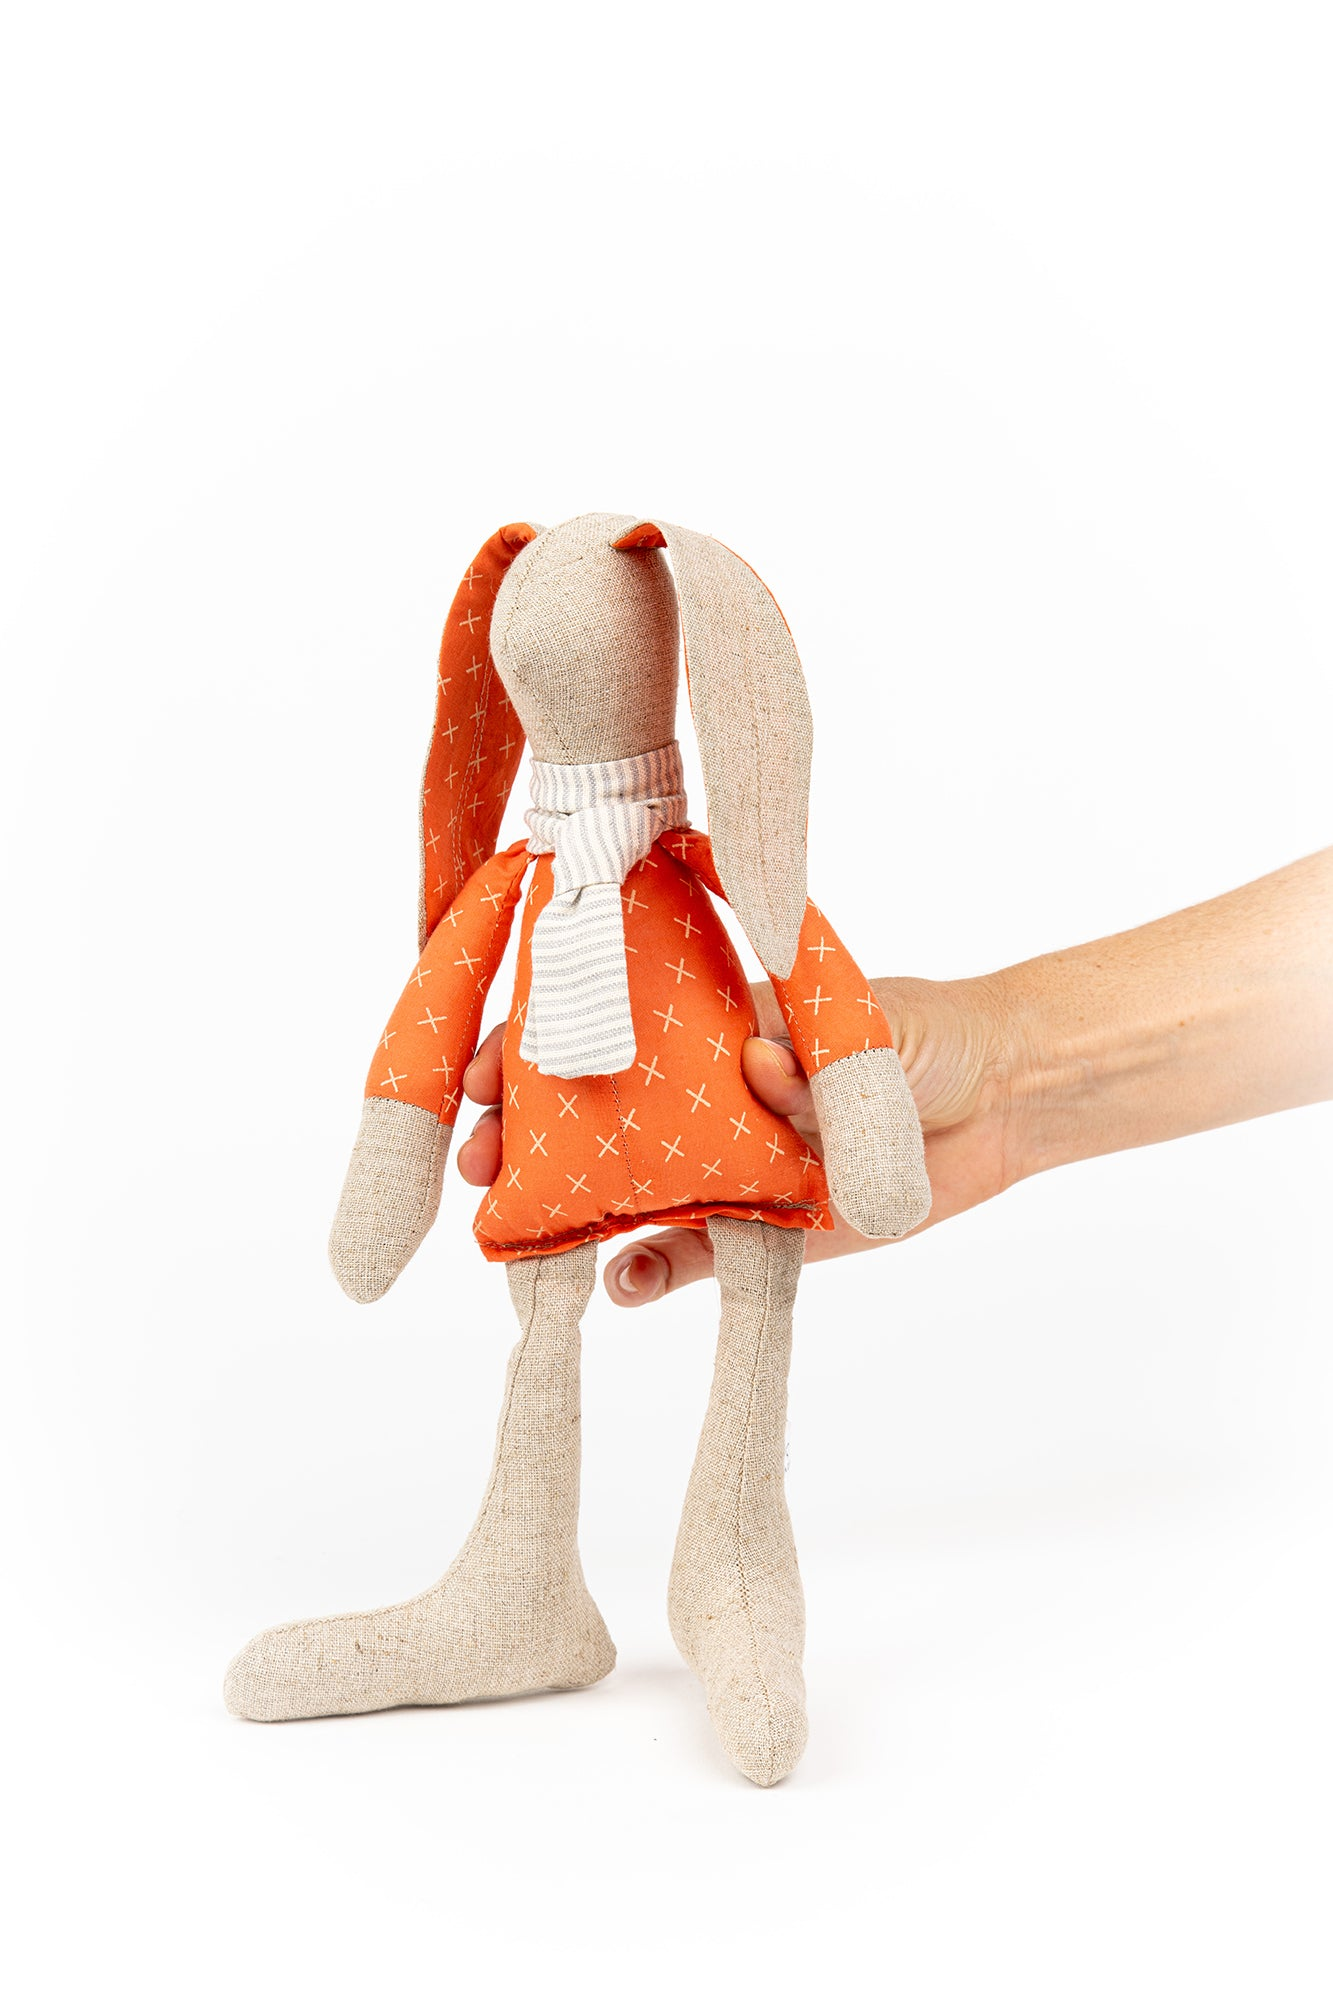 Handmad doll, stuffed animal, Rabbit doll, Fabric doll, Eco friendly gifts, Cloth dolls, Handmade animal doll, Baby room décor, Textile doll